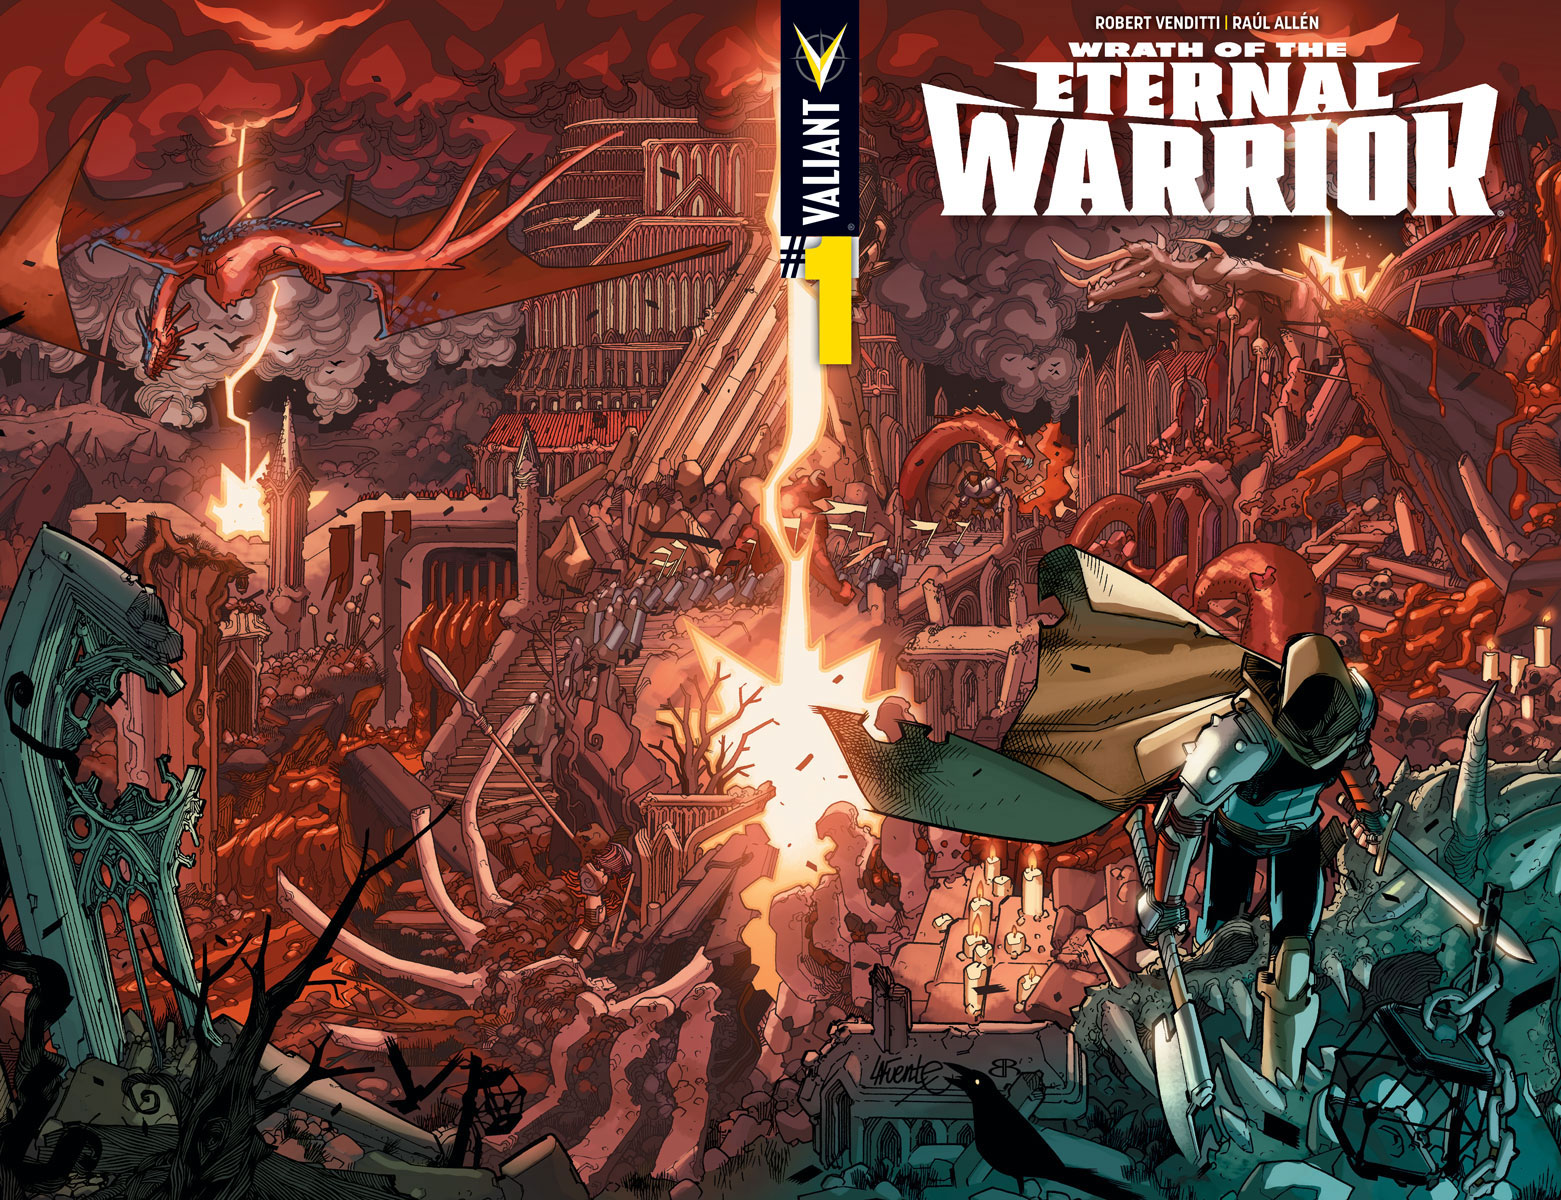 Valiant Release Complete Covers for Wrath of the Eternal Warrior #1